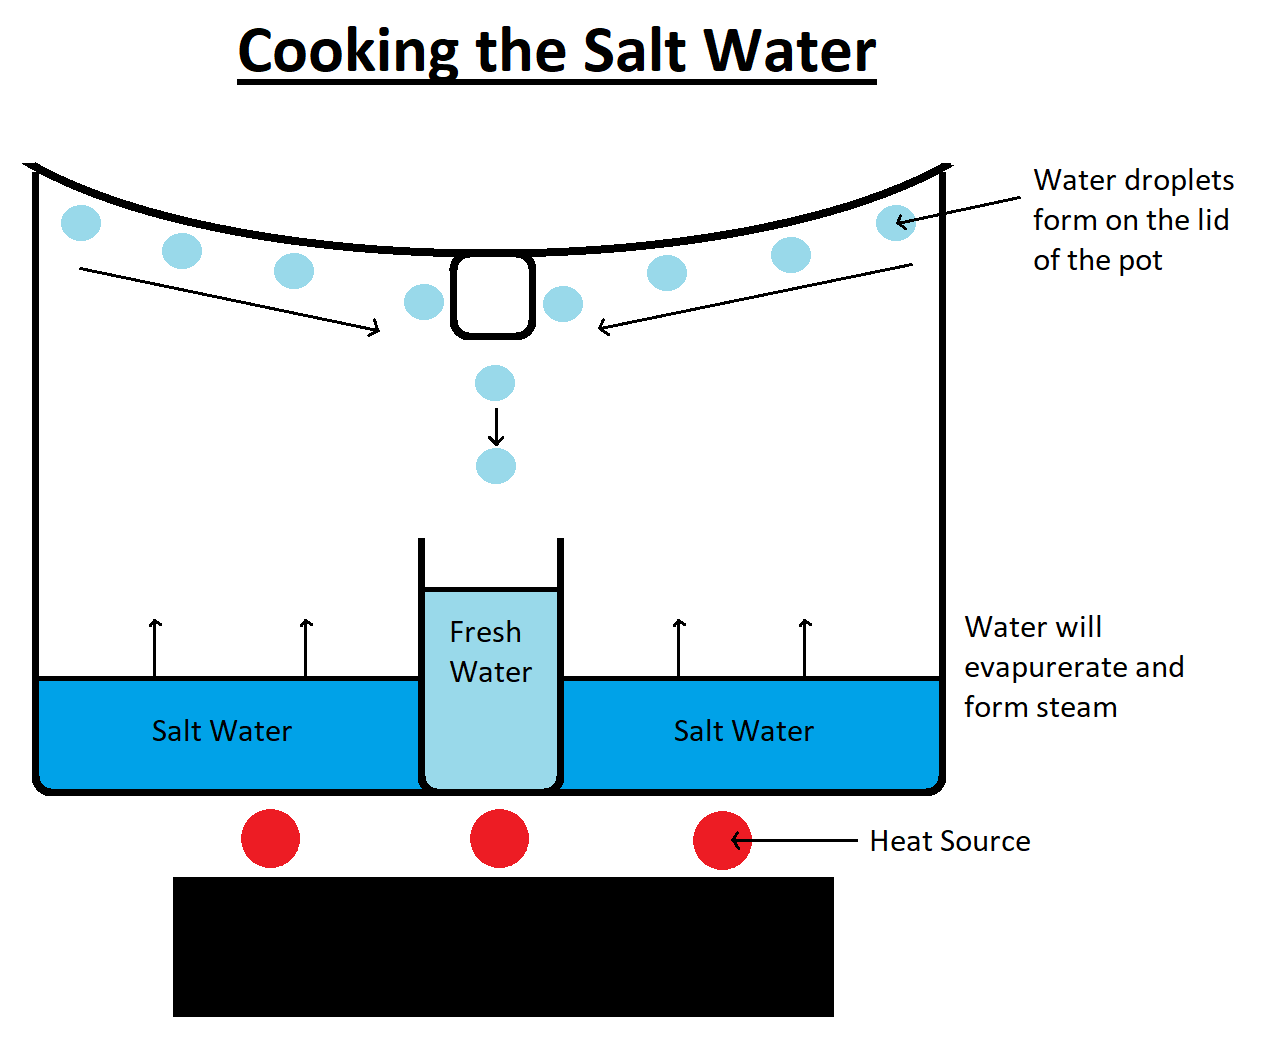 Cooking the Salt Water